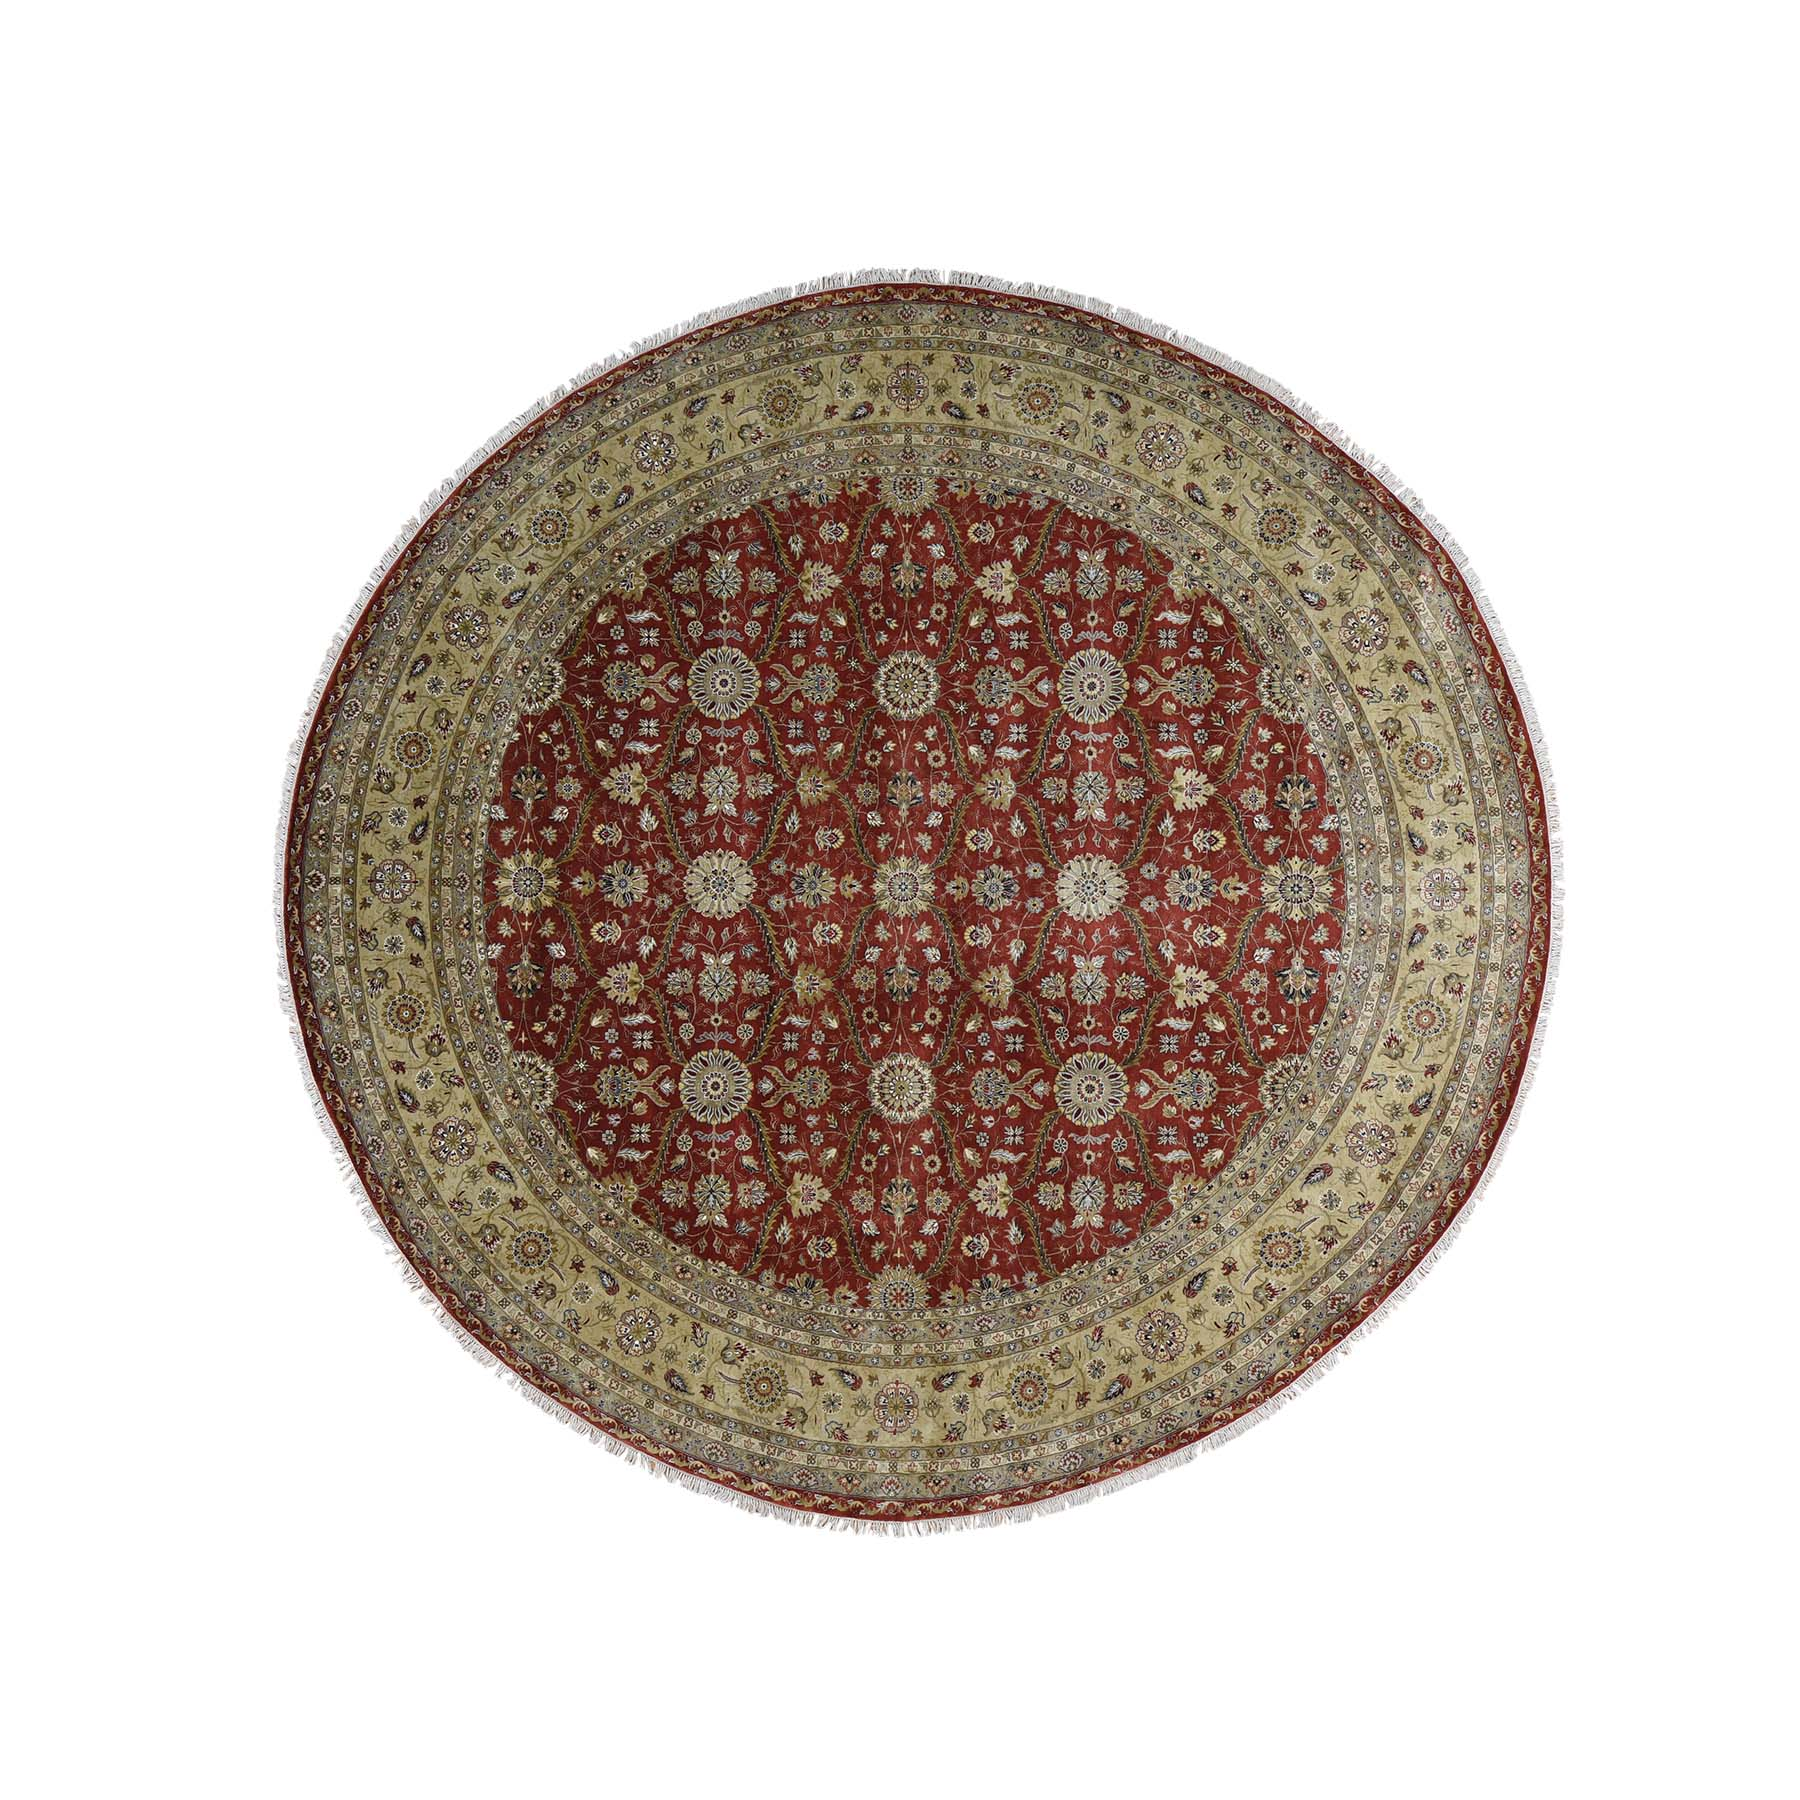 Pirniakan Collection Hand Knotted Red Rug No: 176656